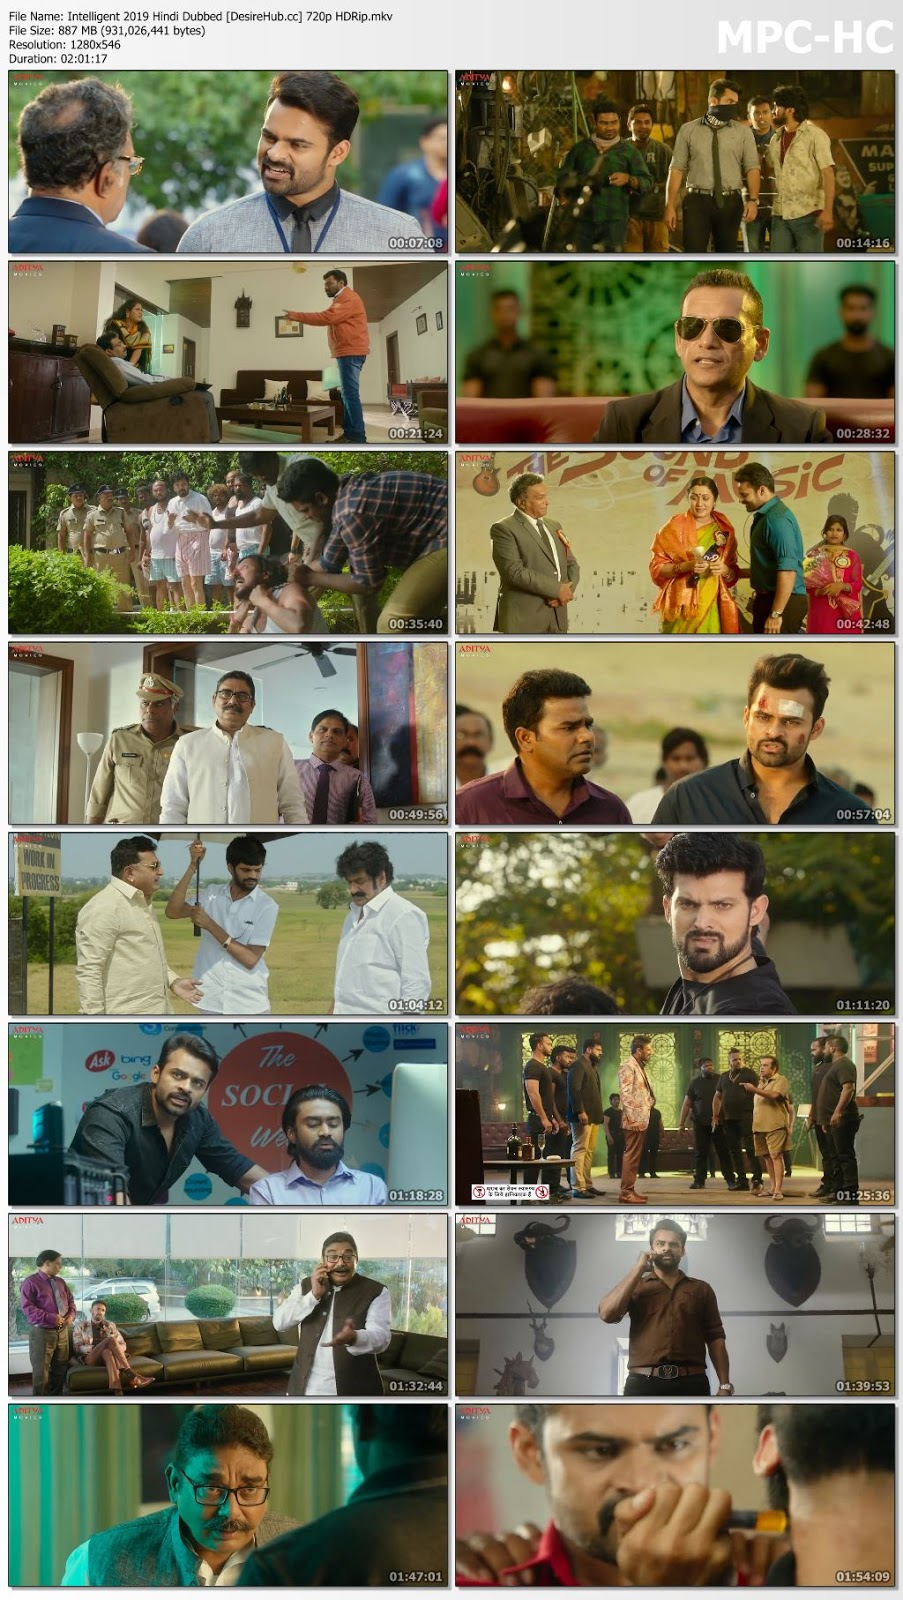 Intelligent 2019 Hindi Dubbed 480p HDRip 350MB Desirehub